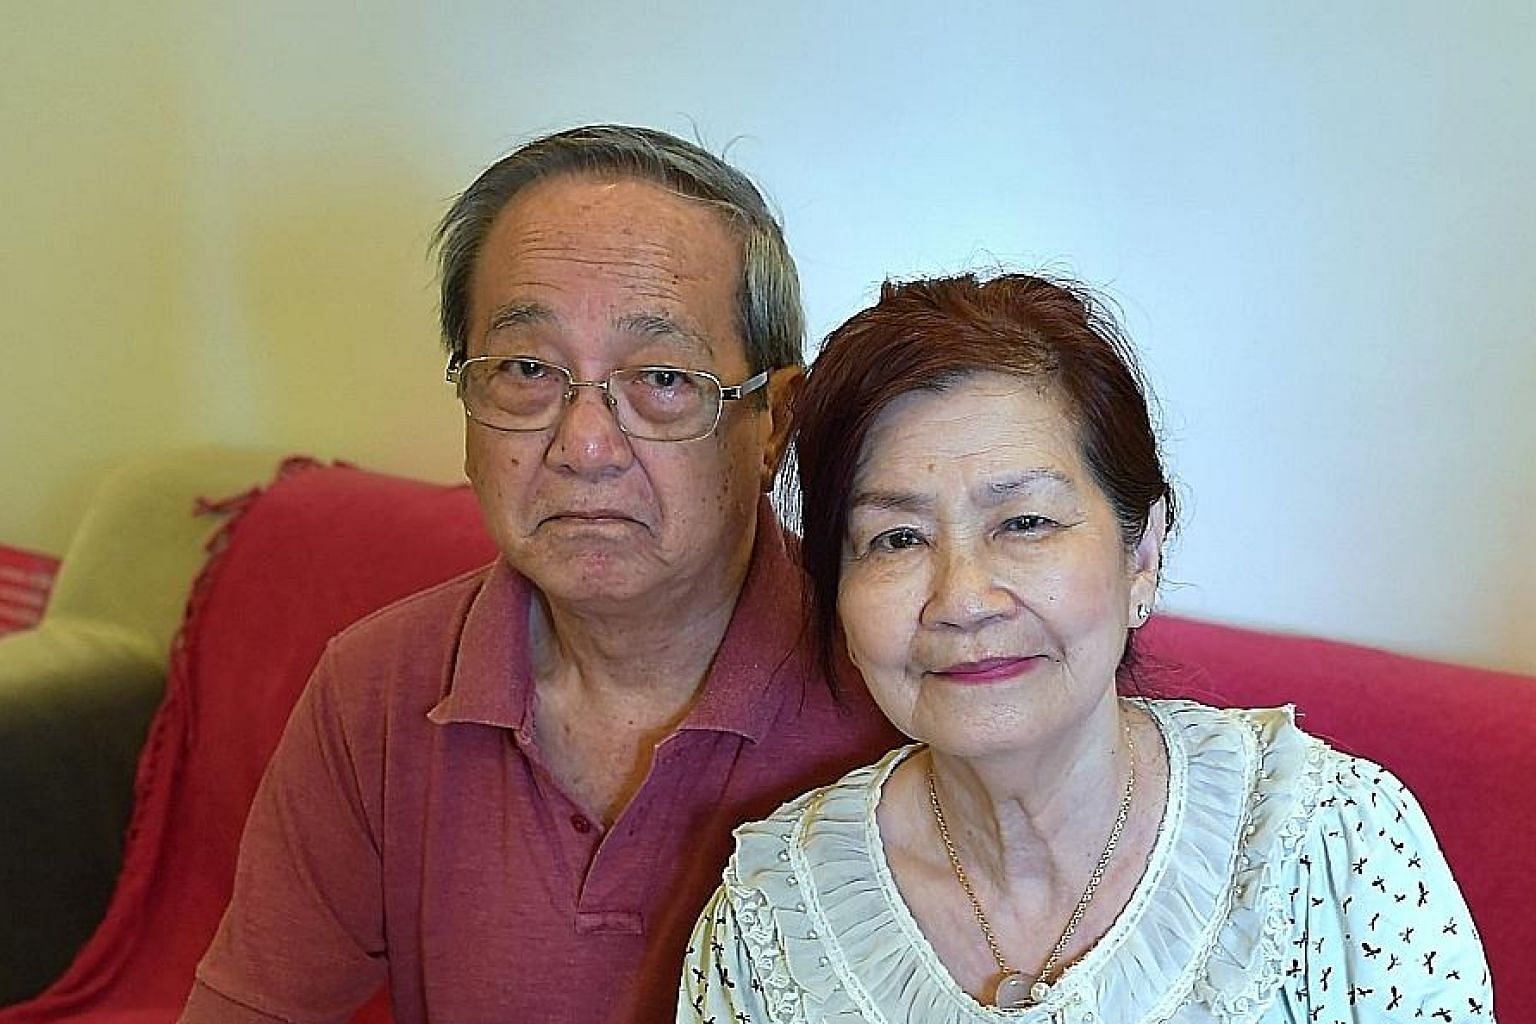 Madam Song Yuen Han, 72, with her husband, Mr Edwin Lee, 73. She had a polyclinic referral but was charged private rates at the National University Hospital due to a miscommunication. Of the $20,674 total for Madam Song's three eye procedures, MediSh